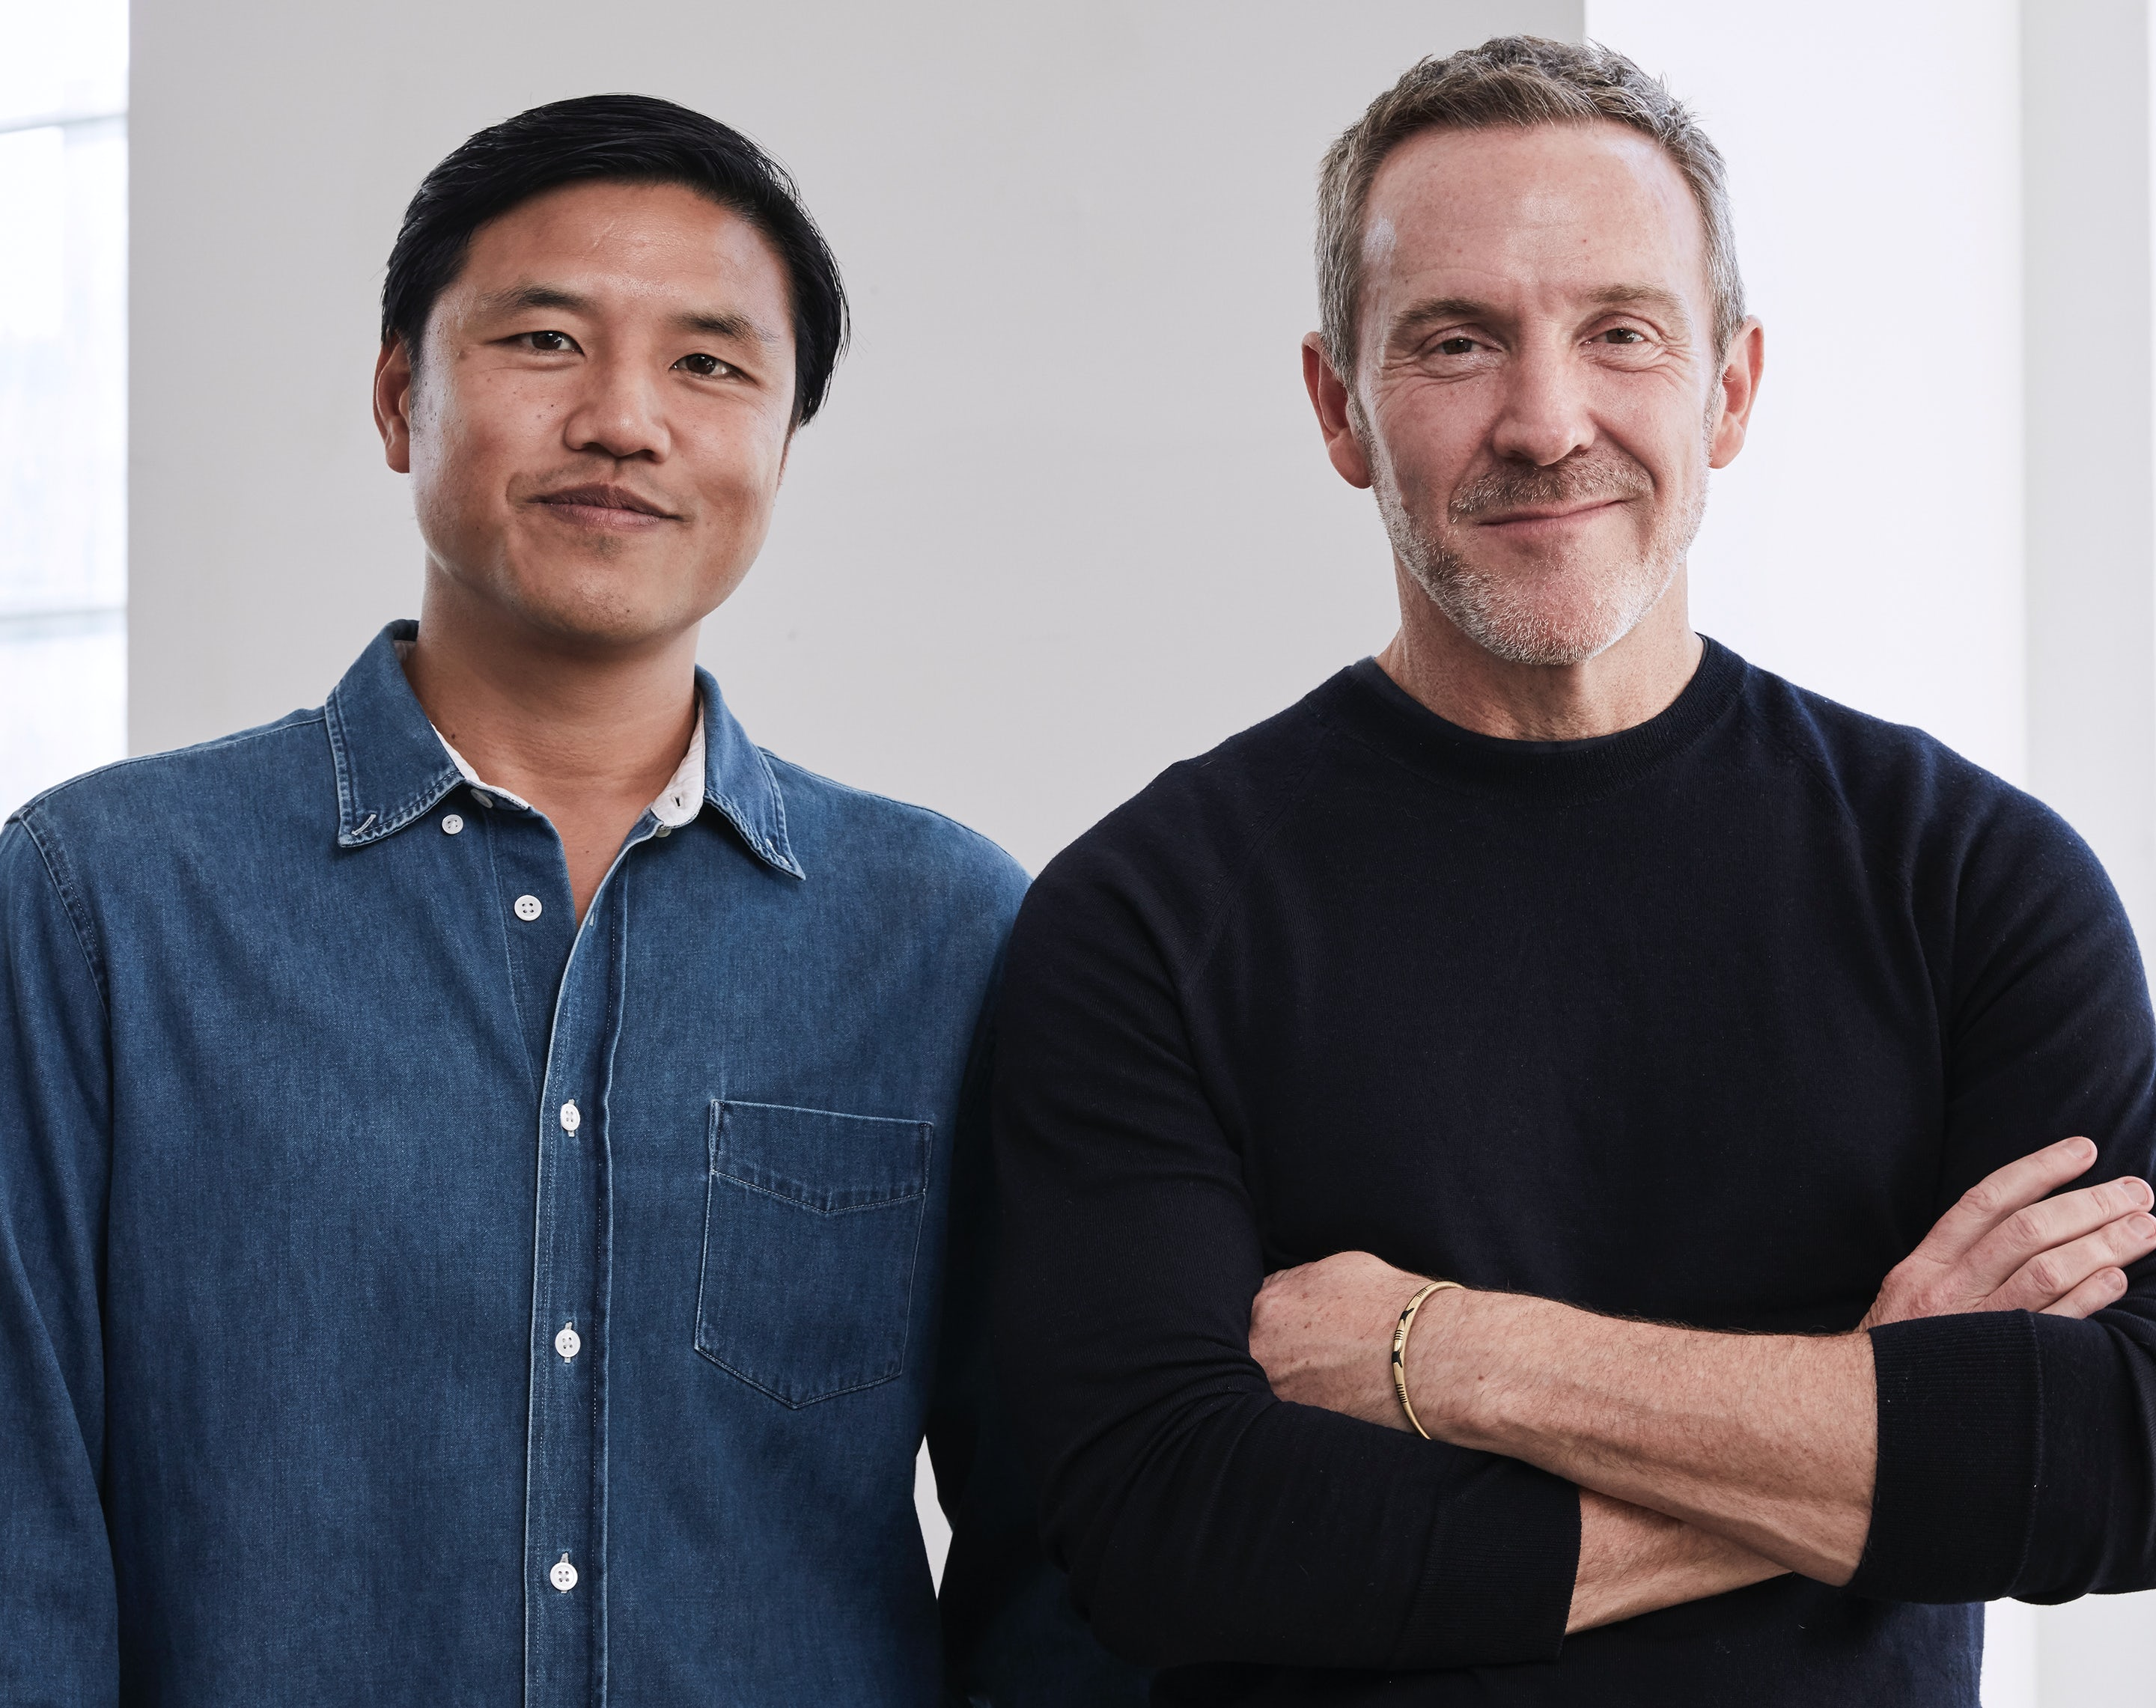 Laird & Partners CEO Patrick Yee and company founder Trey Laird | Source: Courtesy